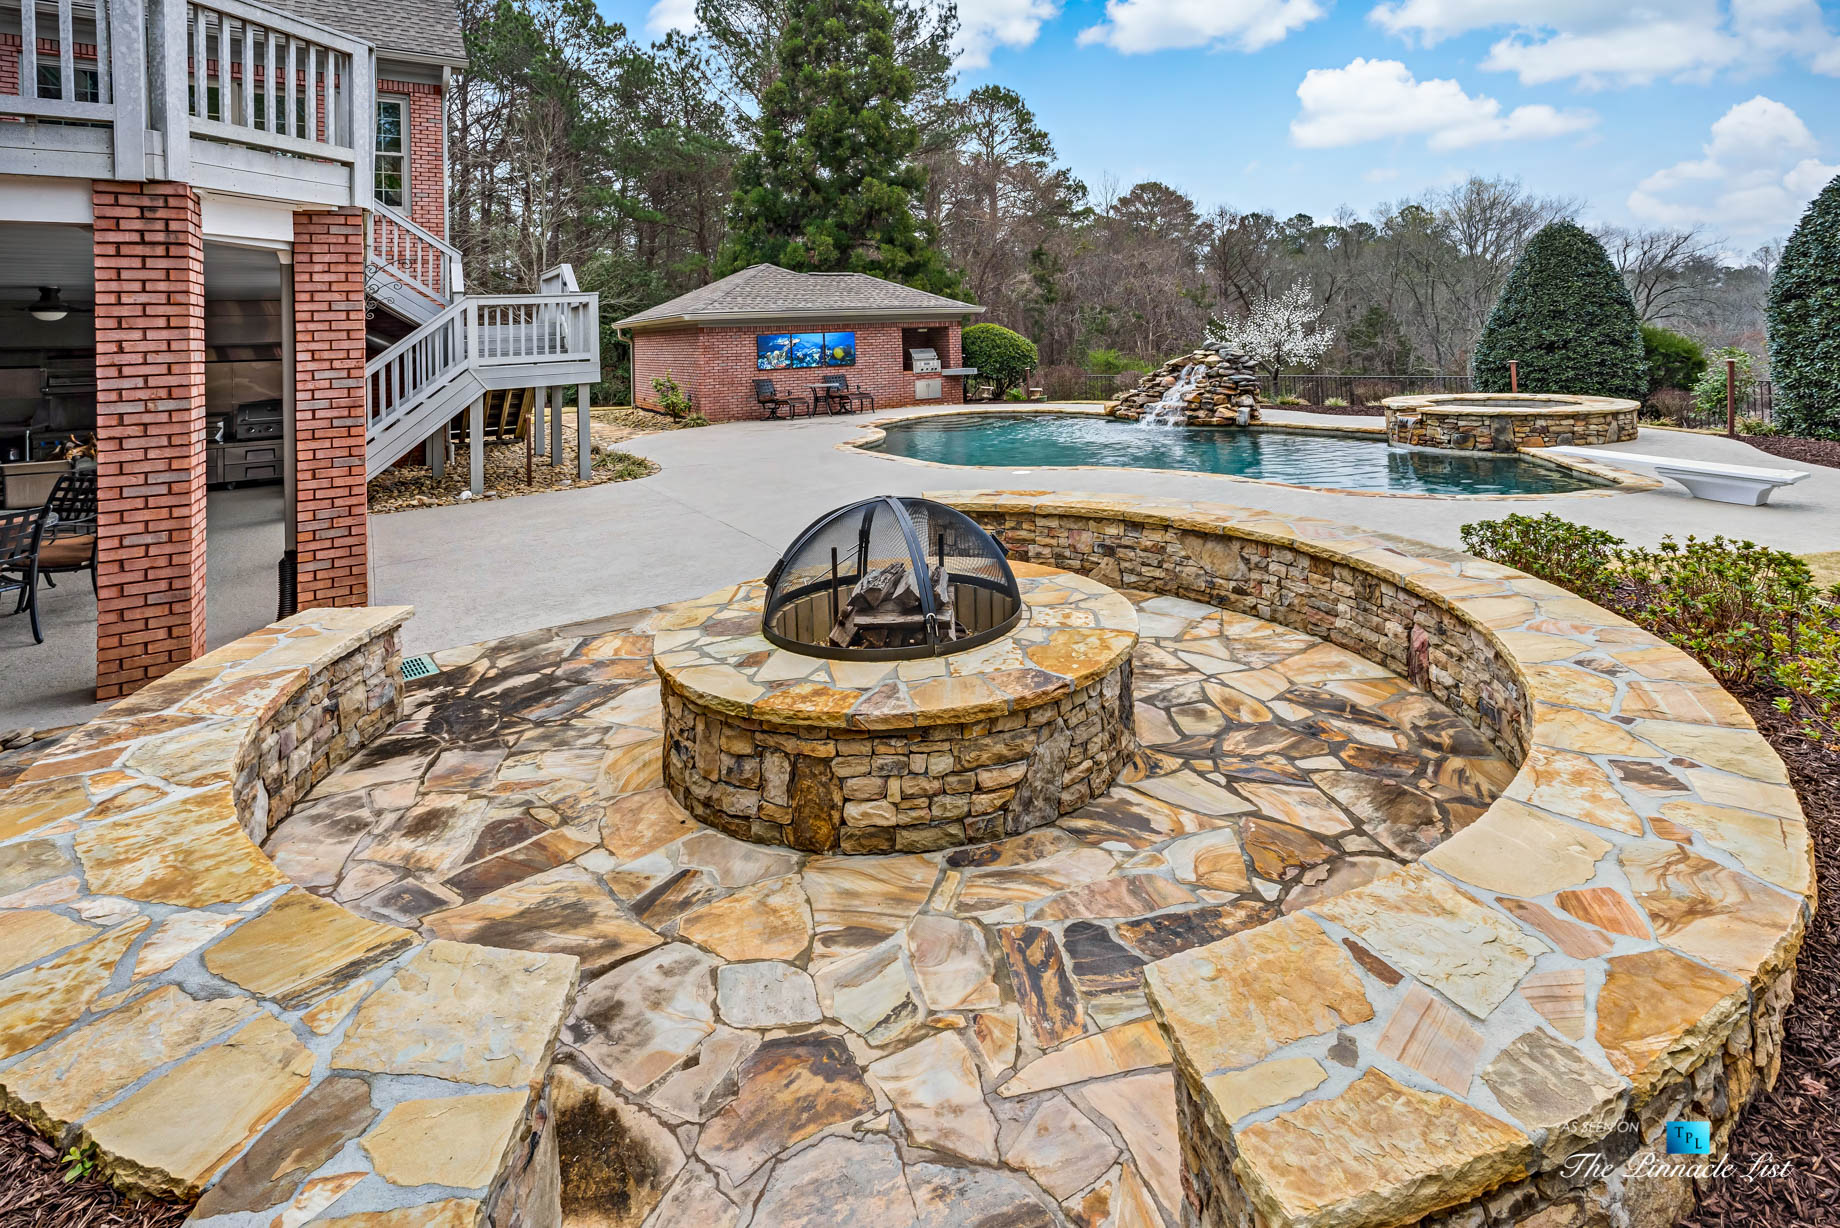 2219 Costley Mill Rd NE, Conyers, GA, USA - Backyard Fire Pit with Hot Tub and Pool - Luxury Real Estate - Equestrian Country Home